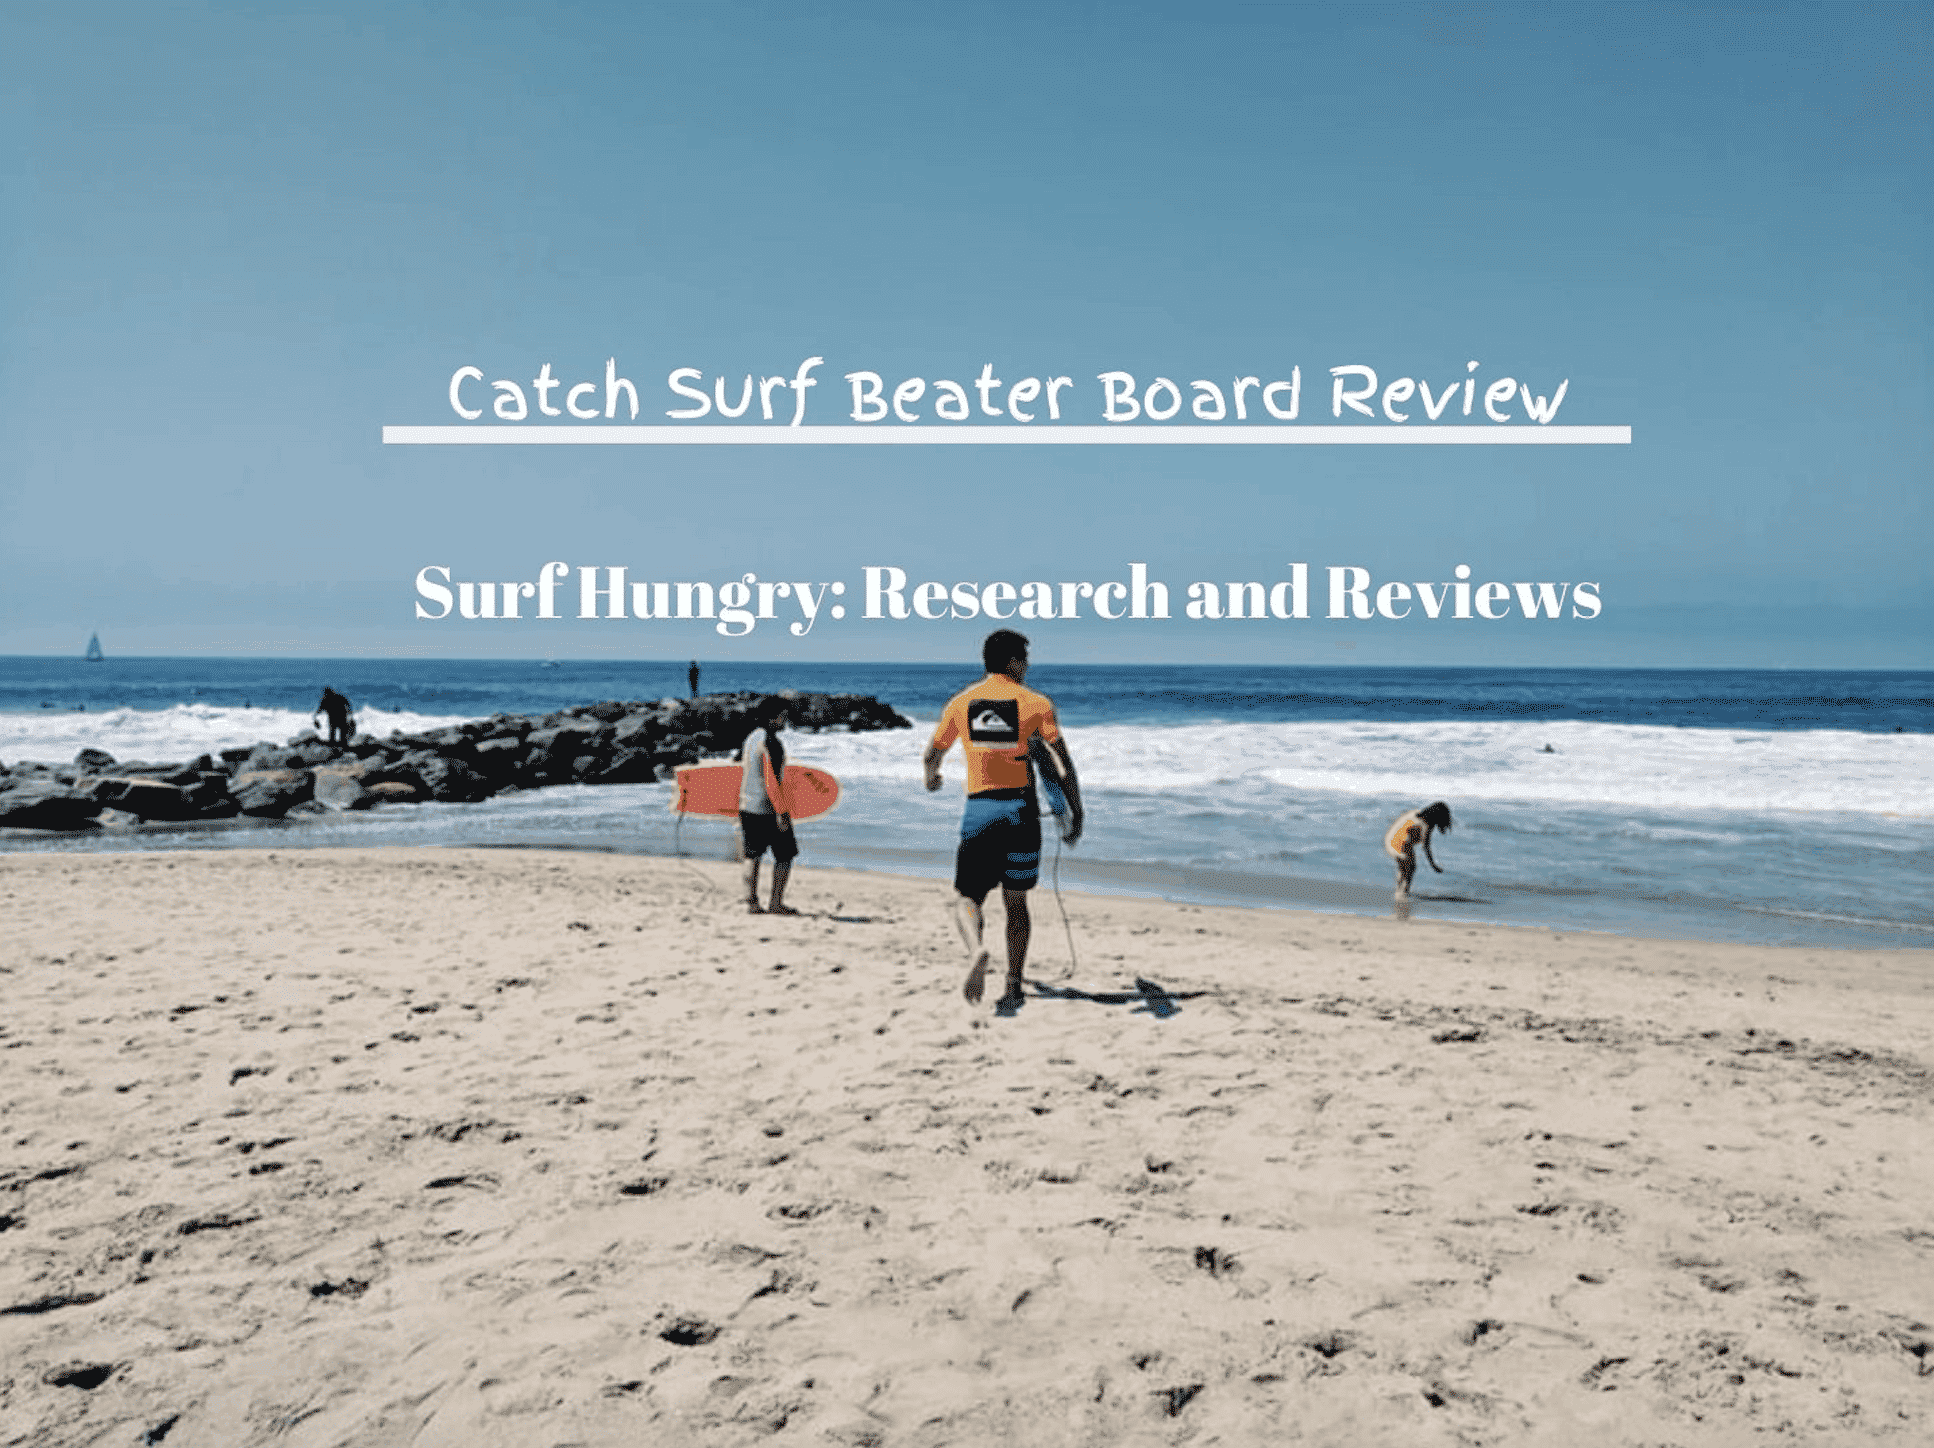 catch surf beater board review